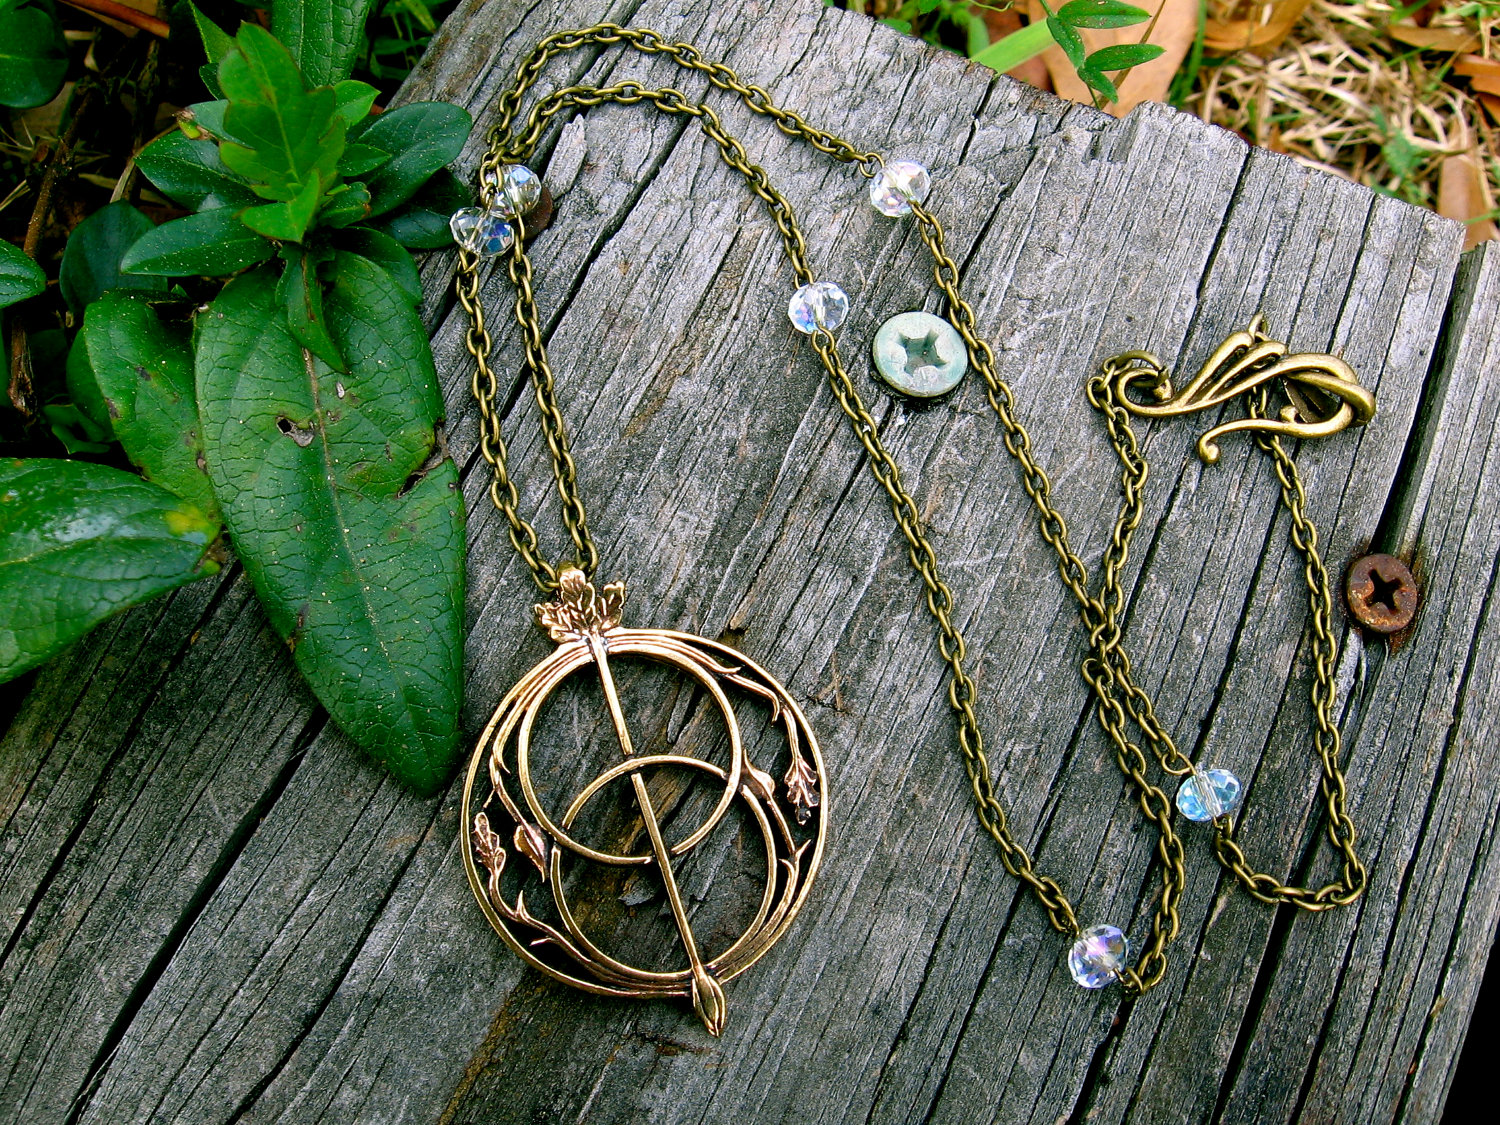 Chalice Well Necklace by EireCrescent on Etsy.